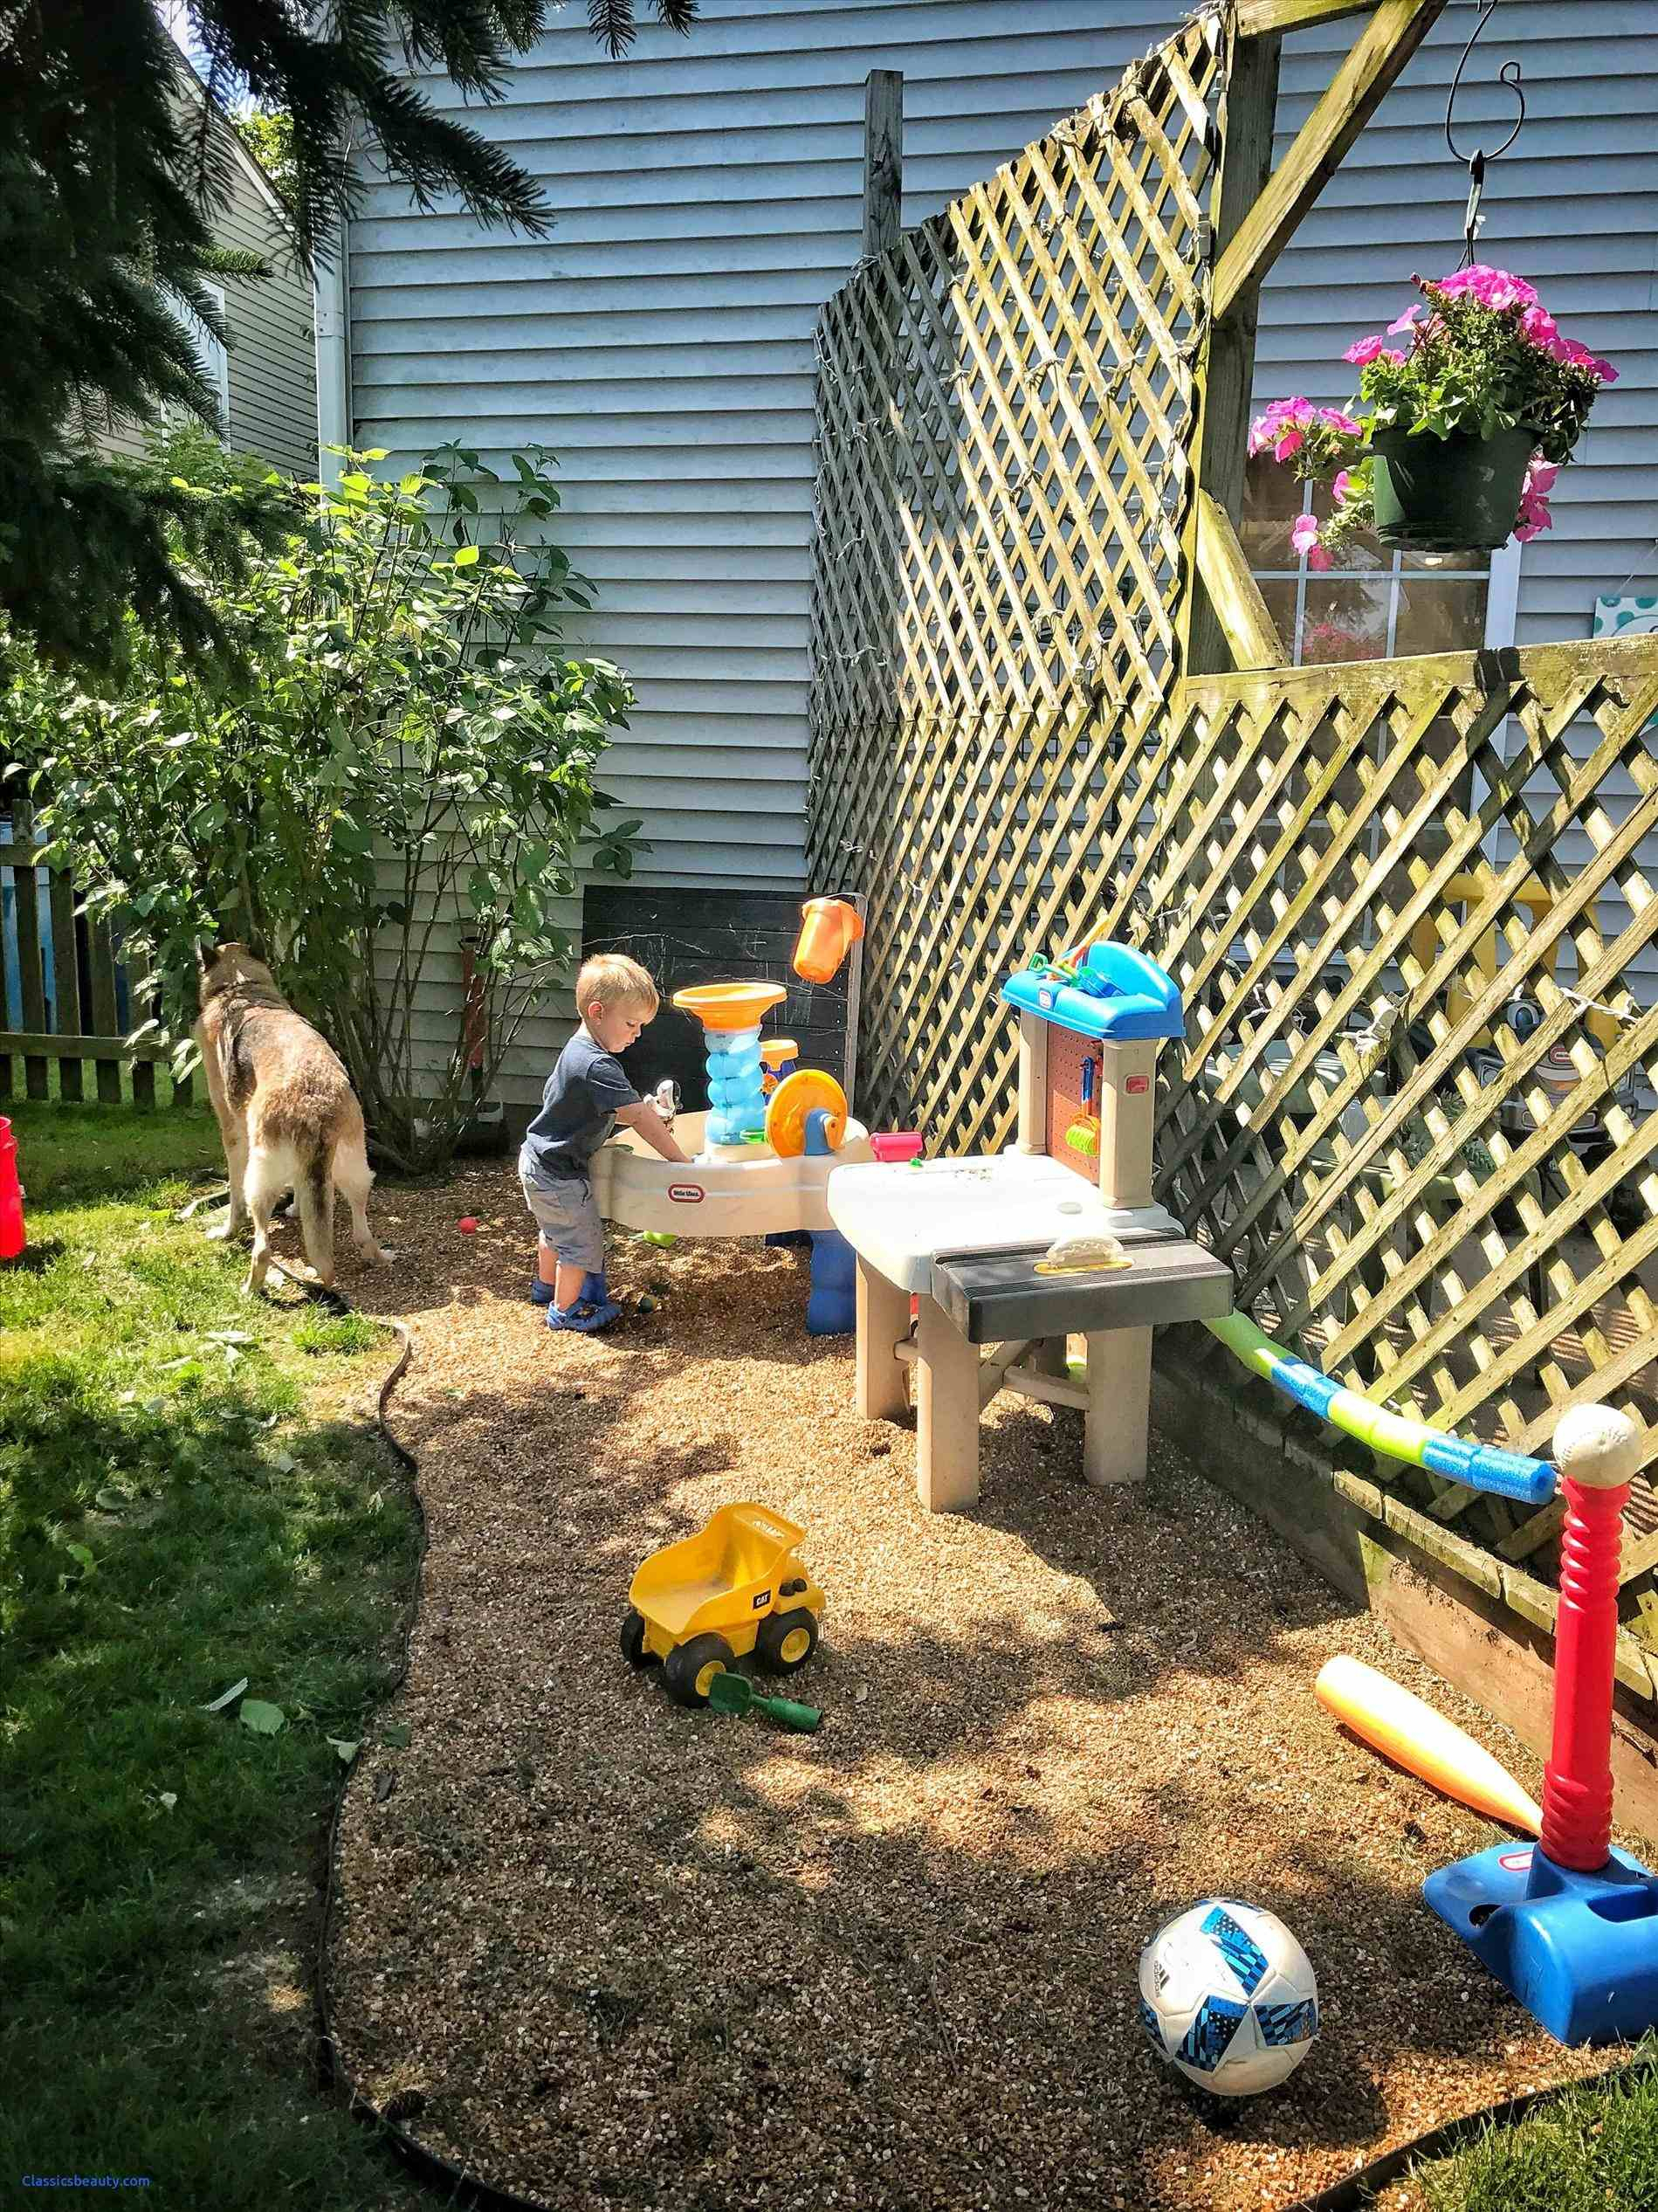 Cool Backyard Ideas For Kids Front Yard Landscape Fence intended for Cool Backyard Ideas For Kids